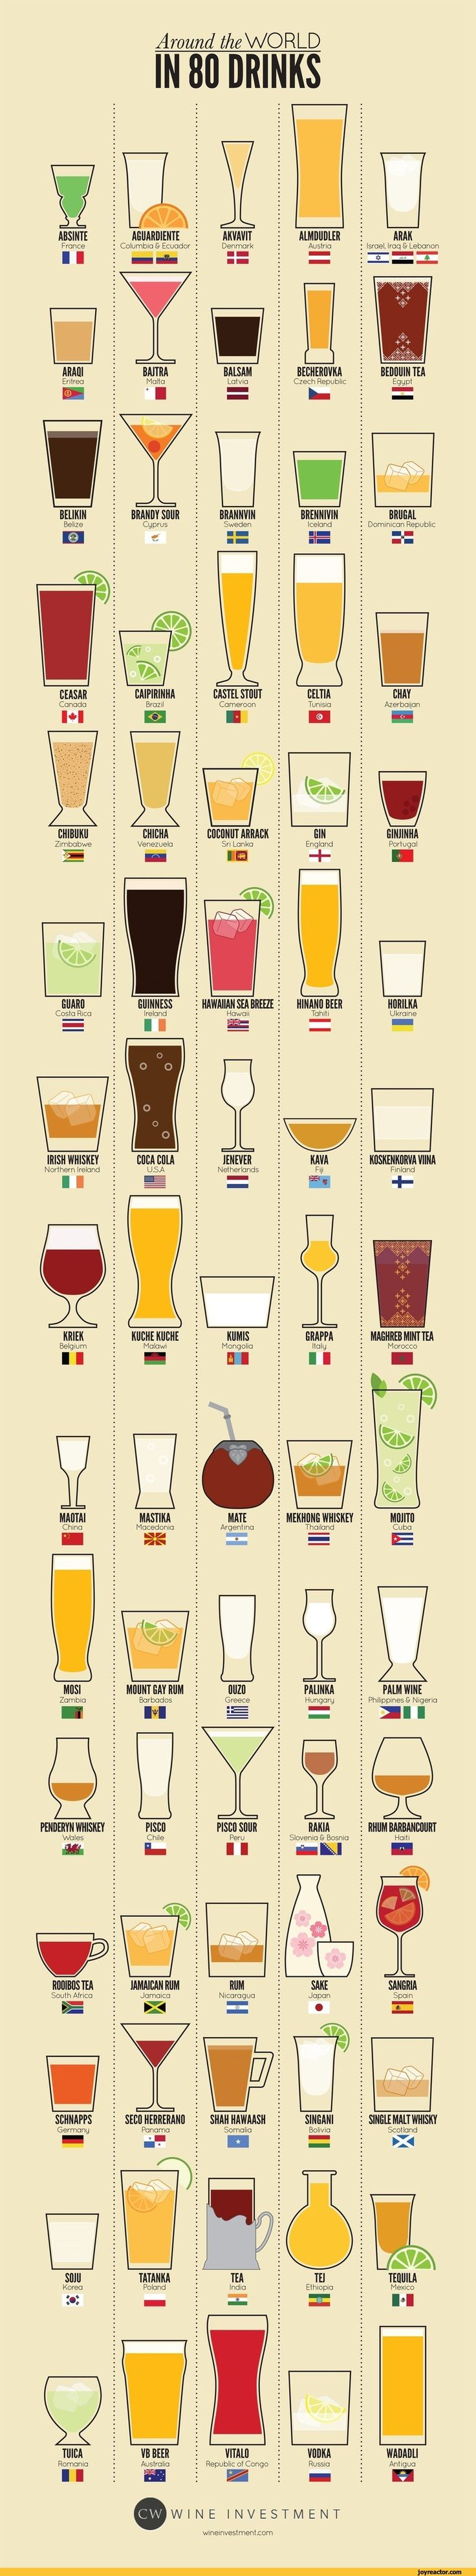 35 best gin images on pinterest jin alcoholic drink recipes and drinkworld gamestrikefo Gallery